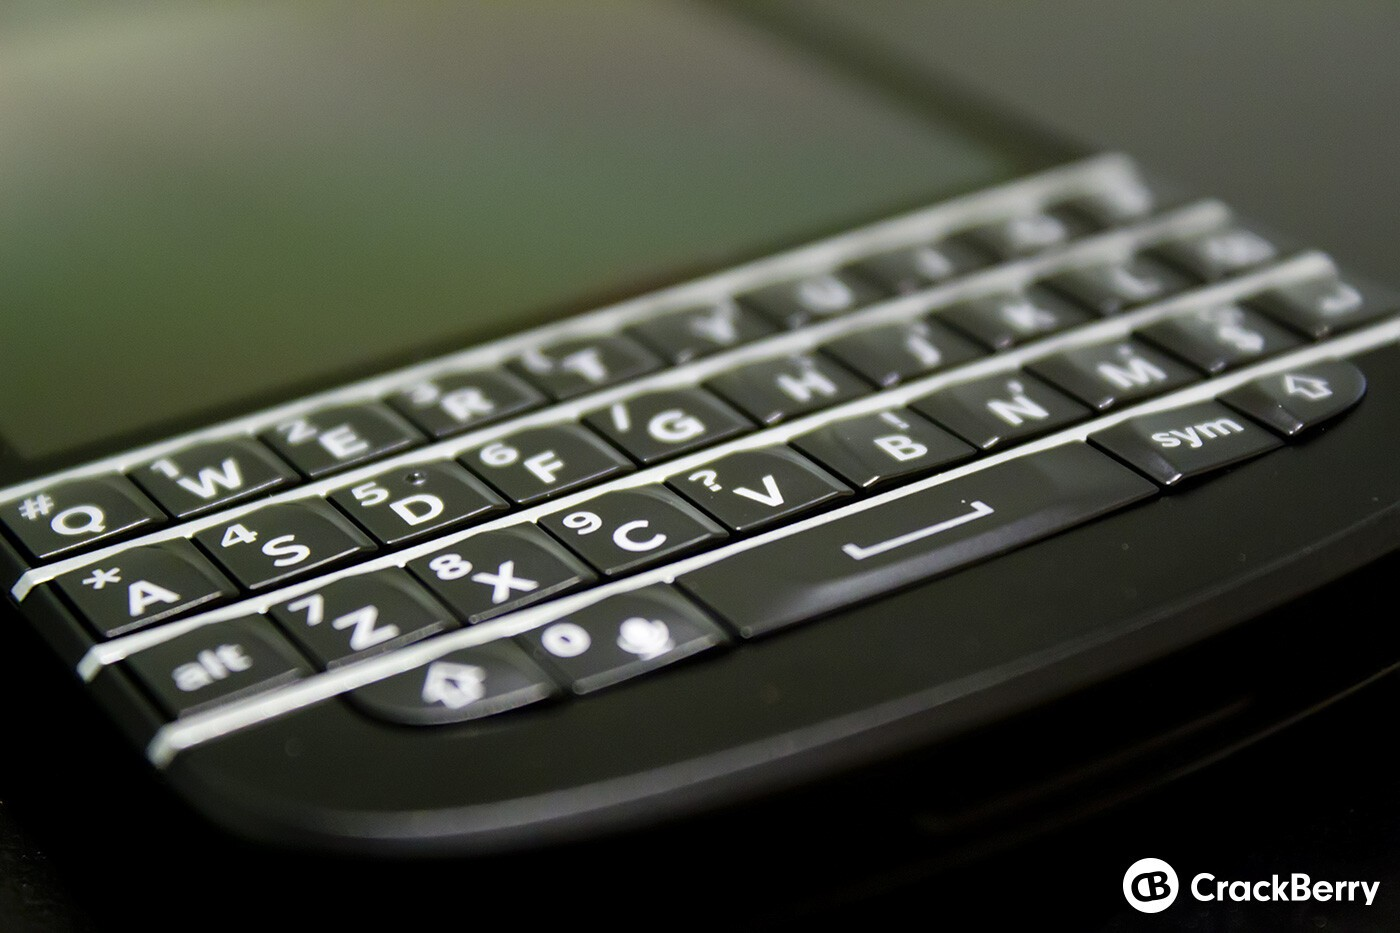 Sprint now rolling out OS 10.3.2.2813 to BlackBerry Q10 owners